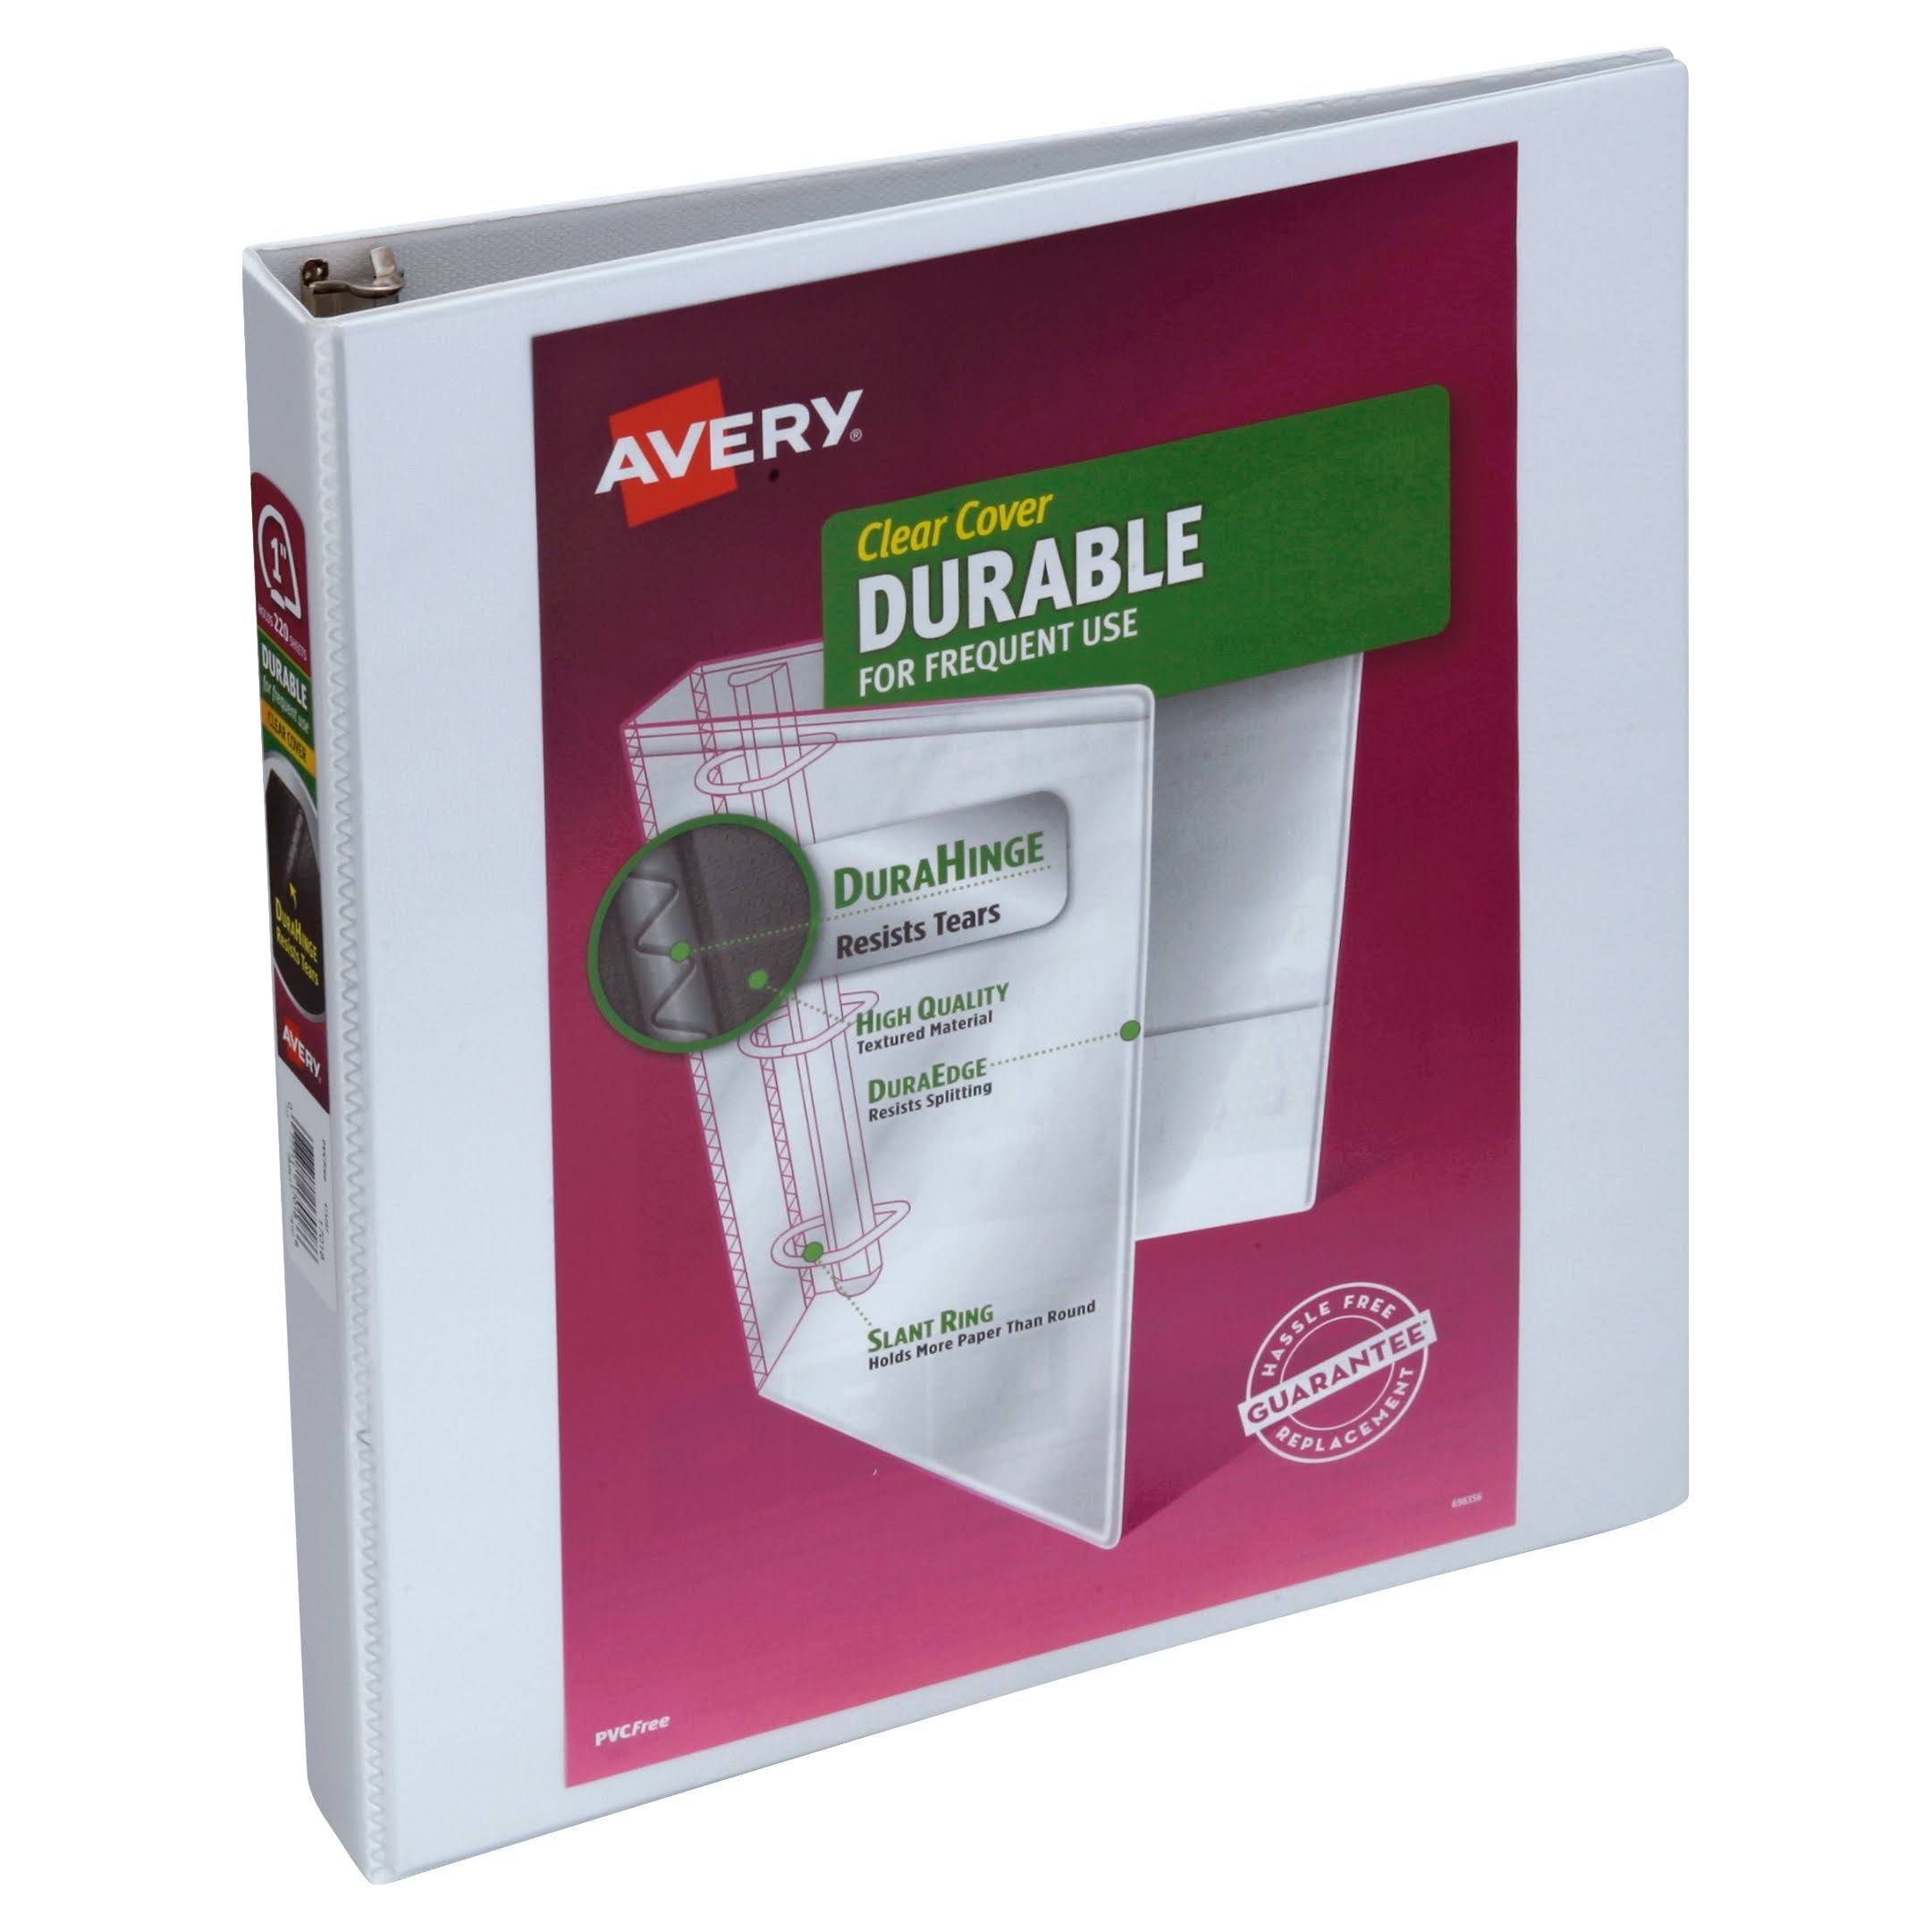 Avery Durable Clear Cover Binder - 1in